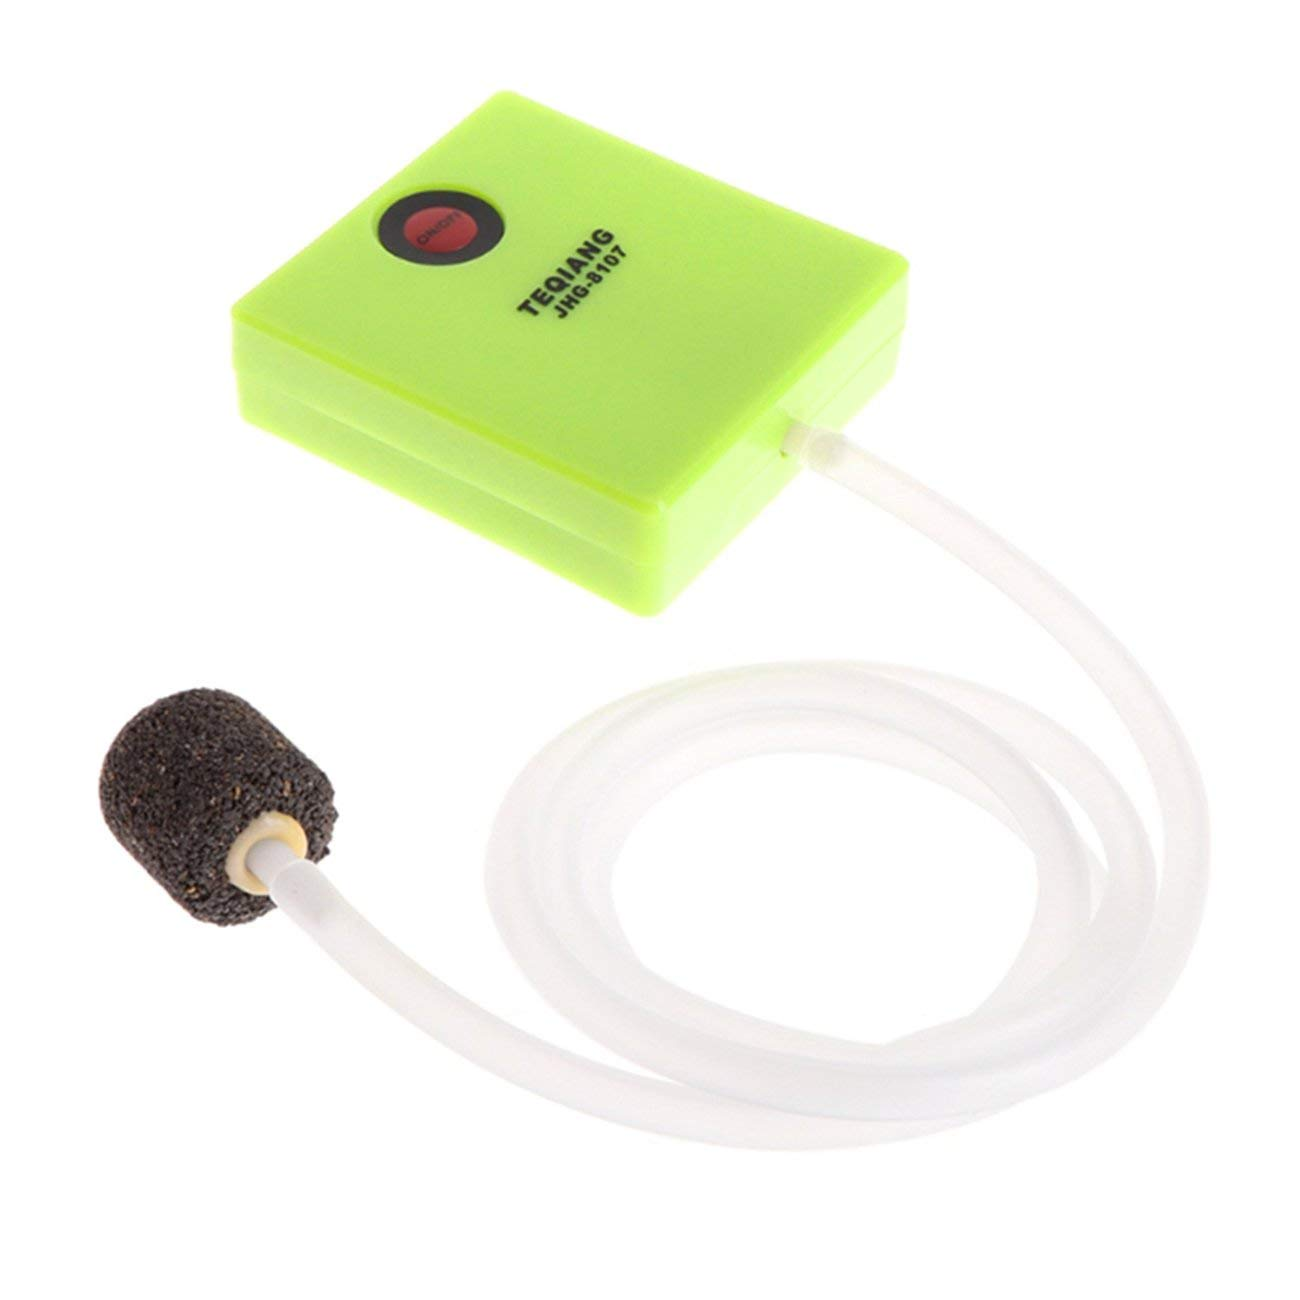 Green Outdoor Mini Ultra Silent Aquarium Air Pump Single Outlet Dry Cell Battery Operated Fish Tank Oxygen Pump Device